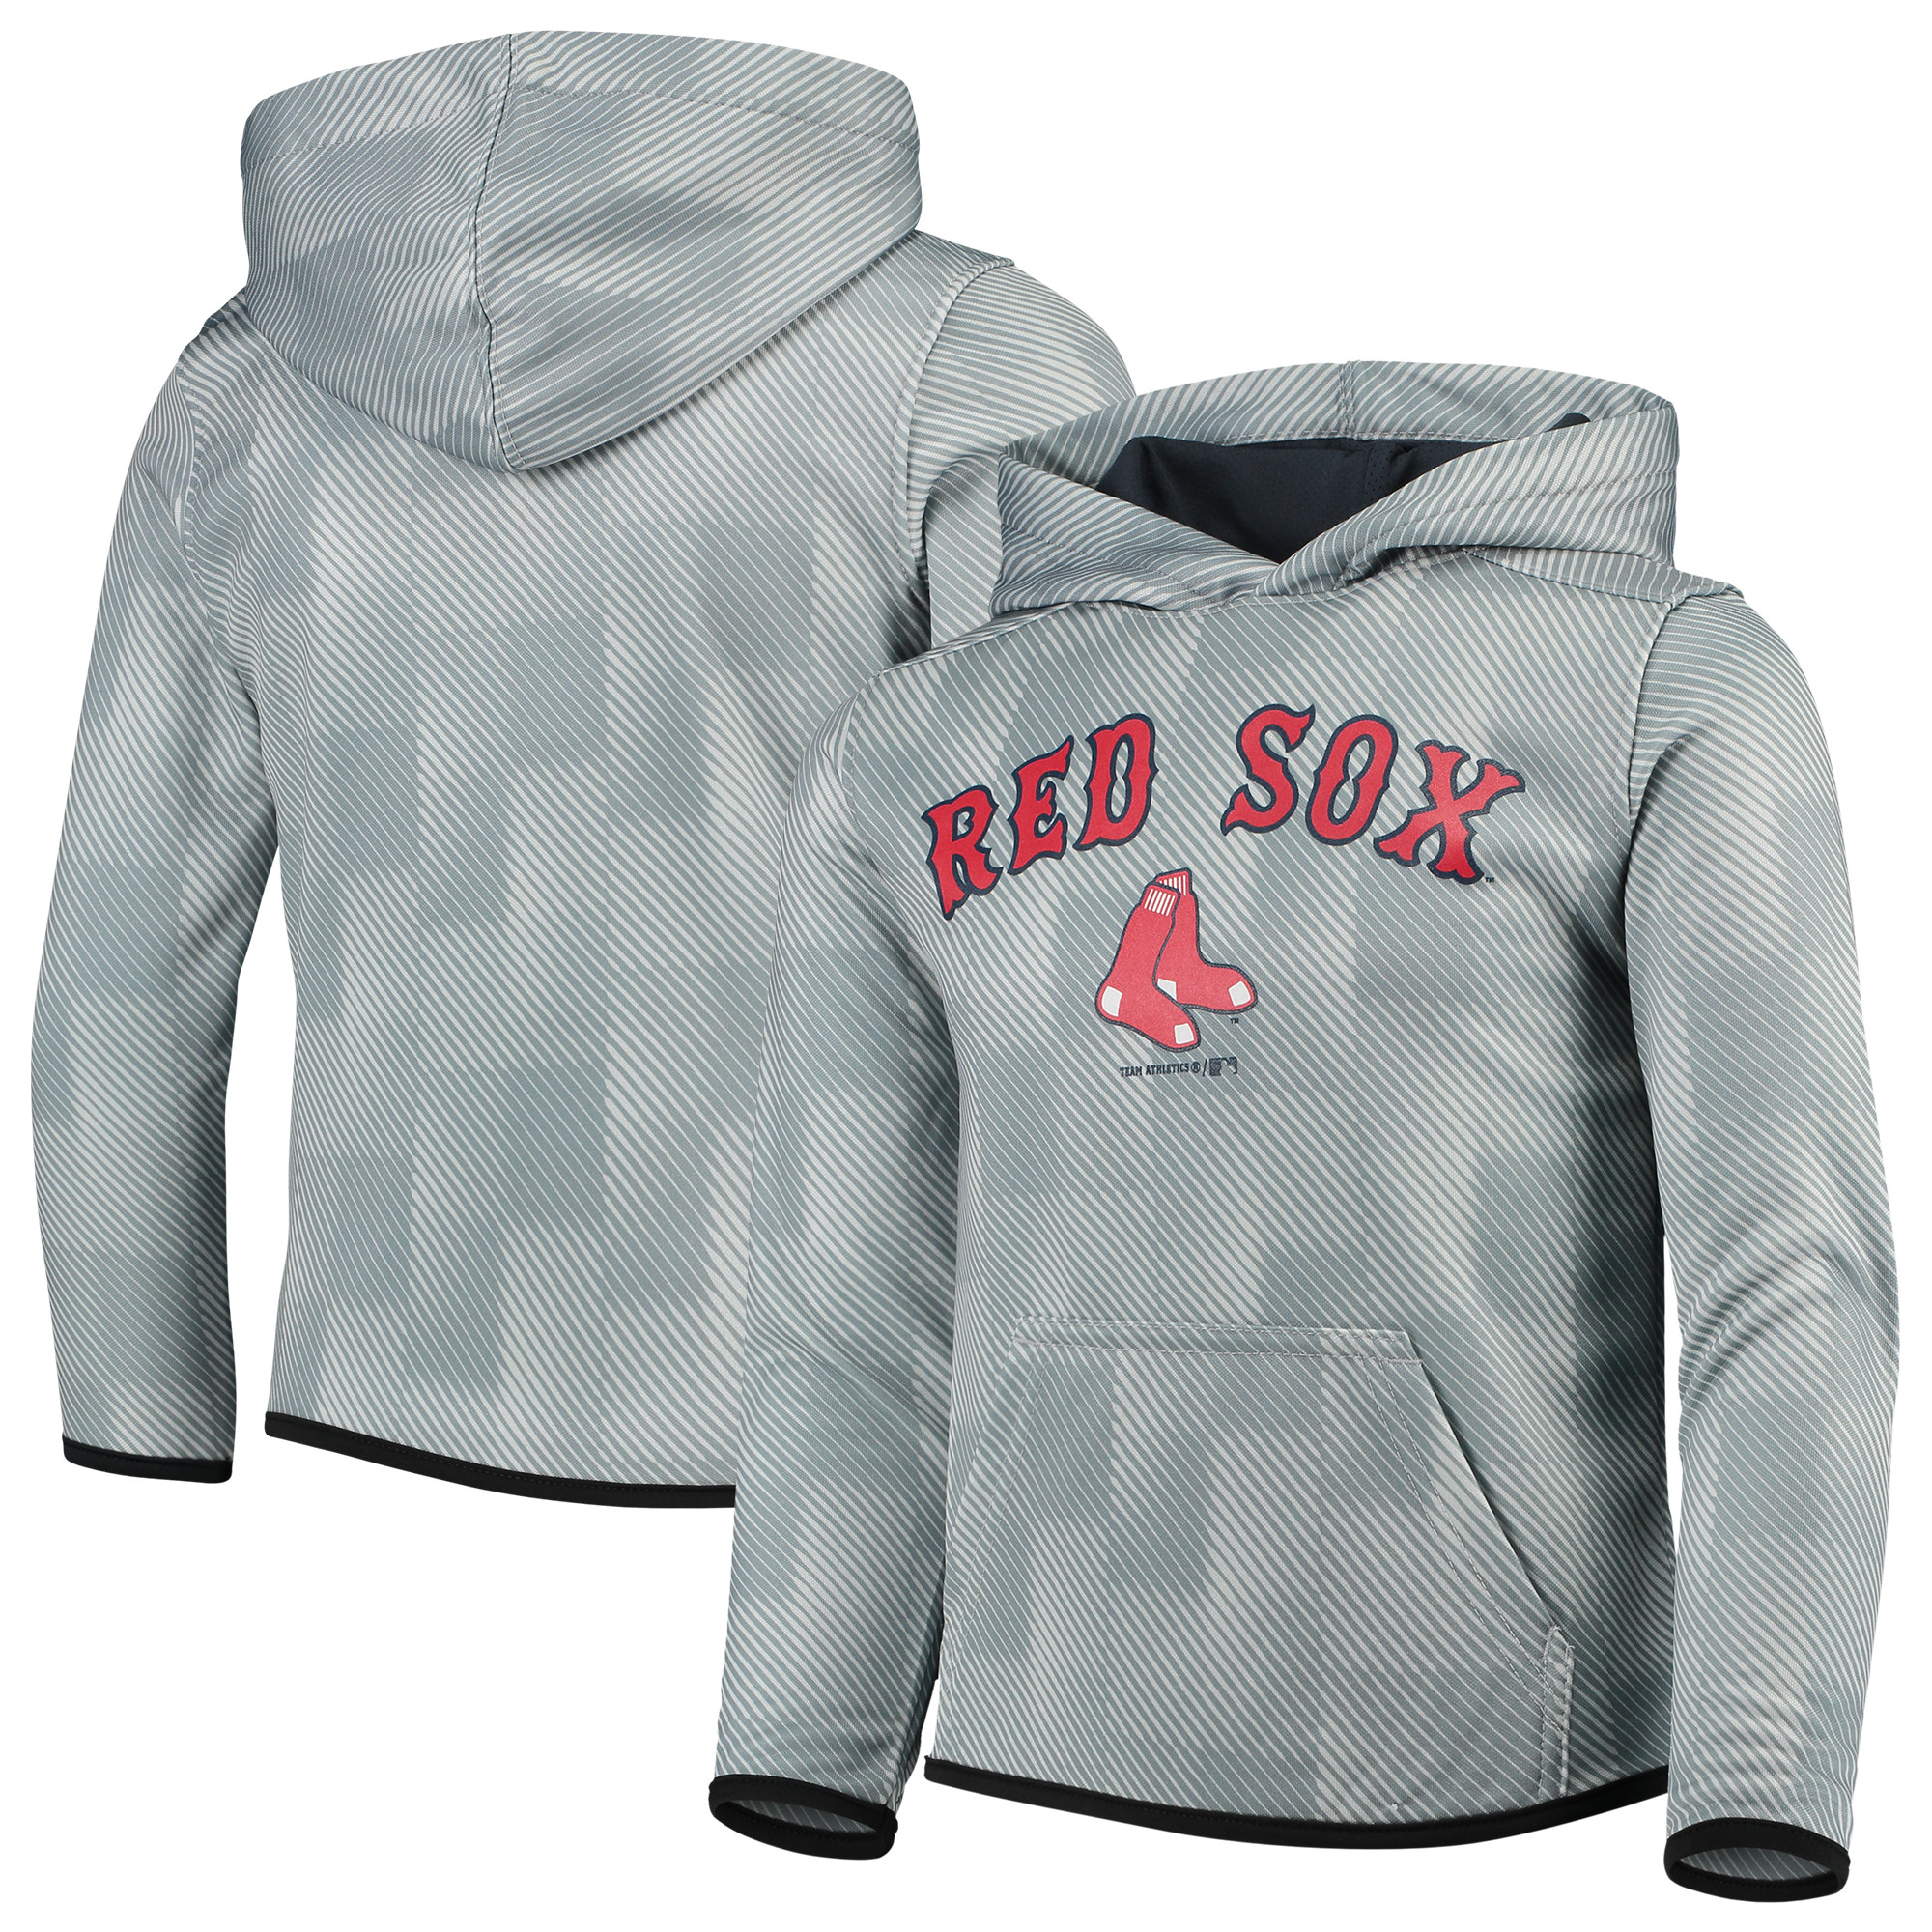 Boston Red Sox Youth Polyester Fleece Sweatshirt - Gray